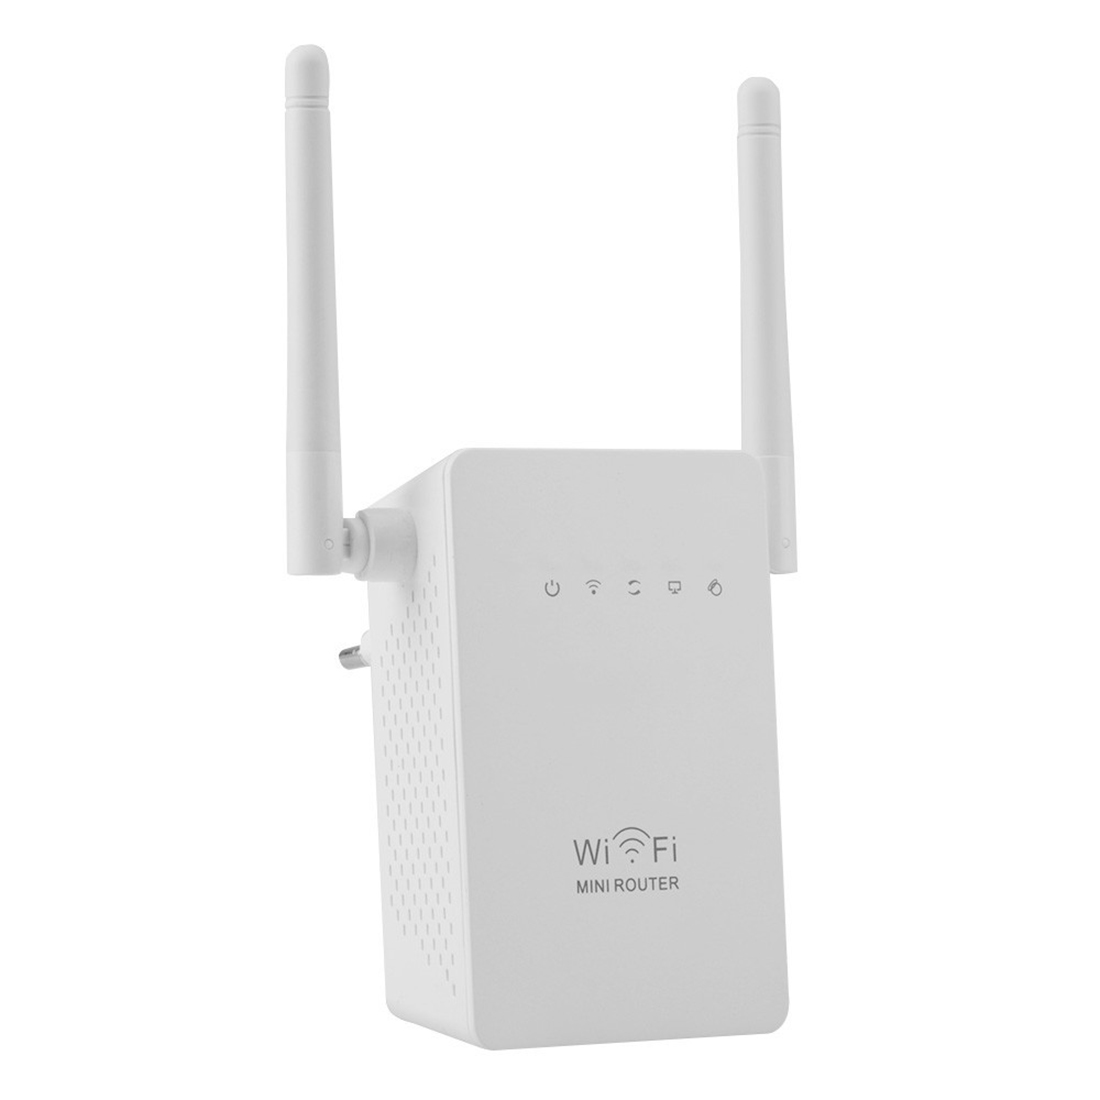 Bảng giá NOYOKERE 300Mbps WiFi Repeater Network Range Extender Booster N300 Single Increase Dual External Antennas EU US Plug Phong Vũ